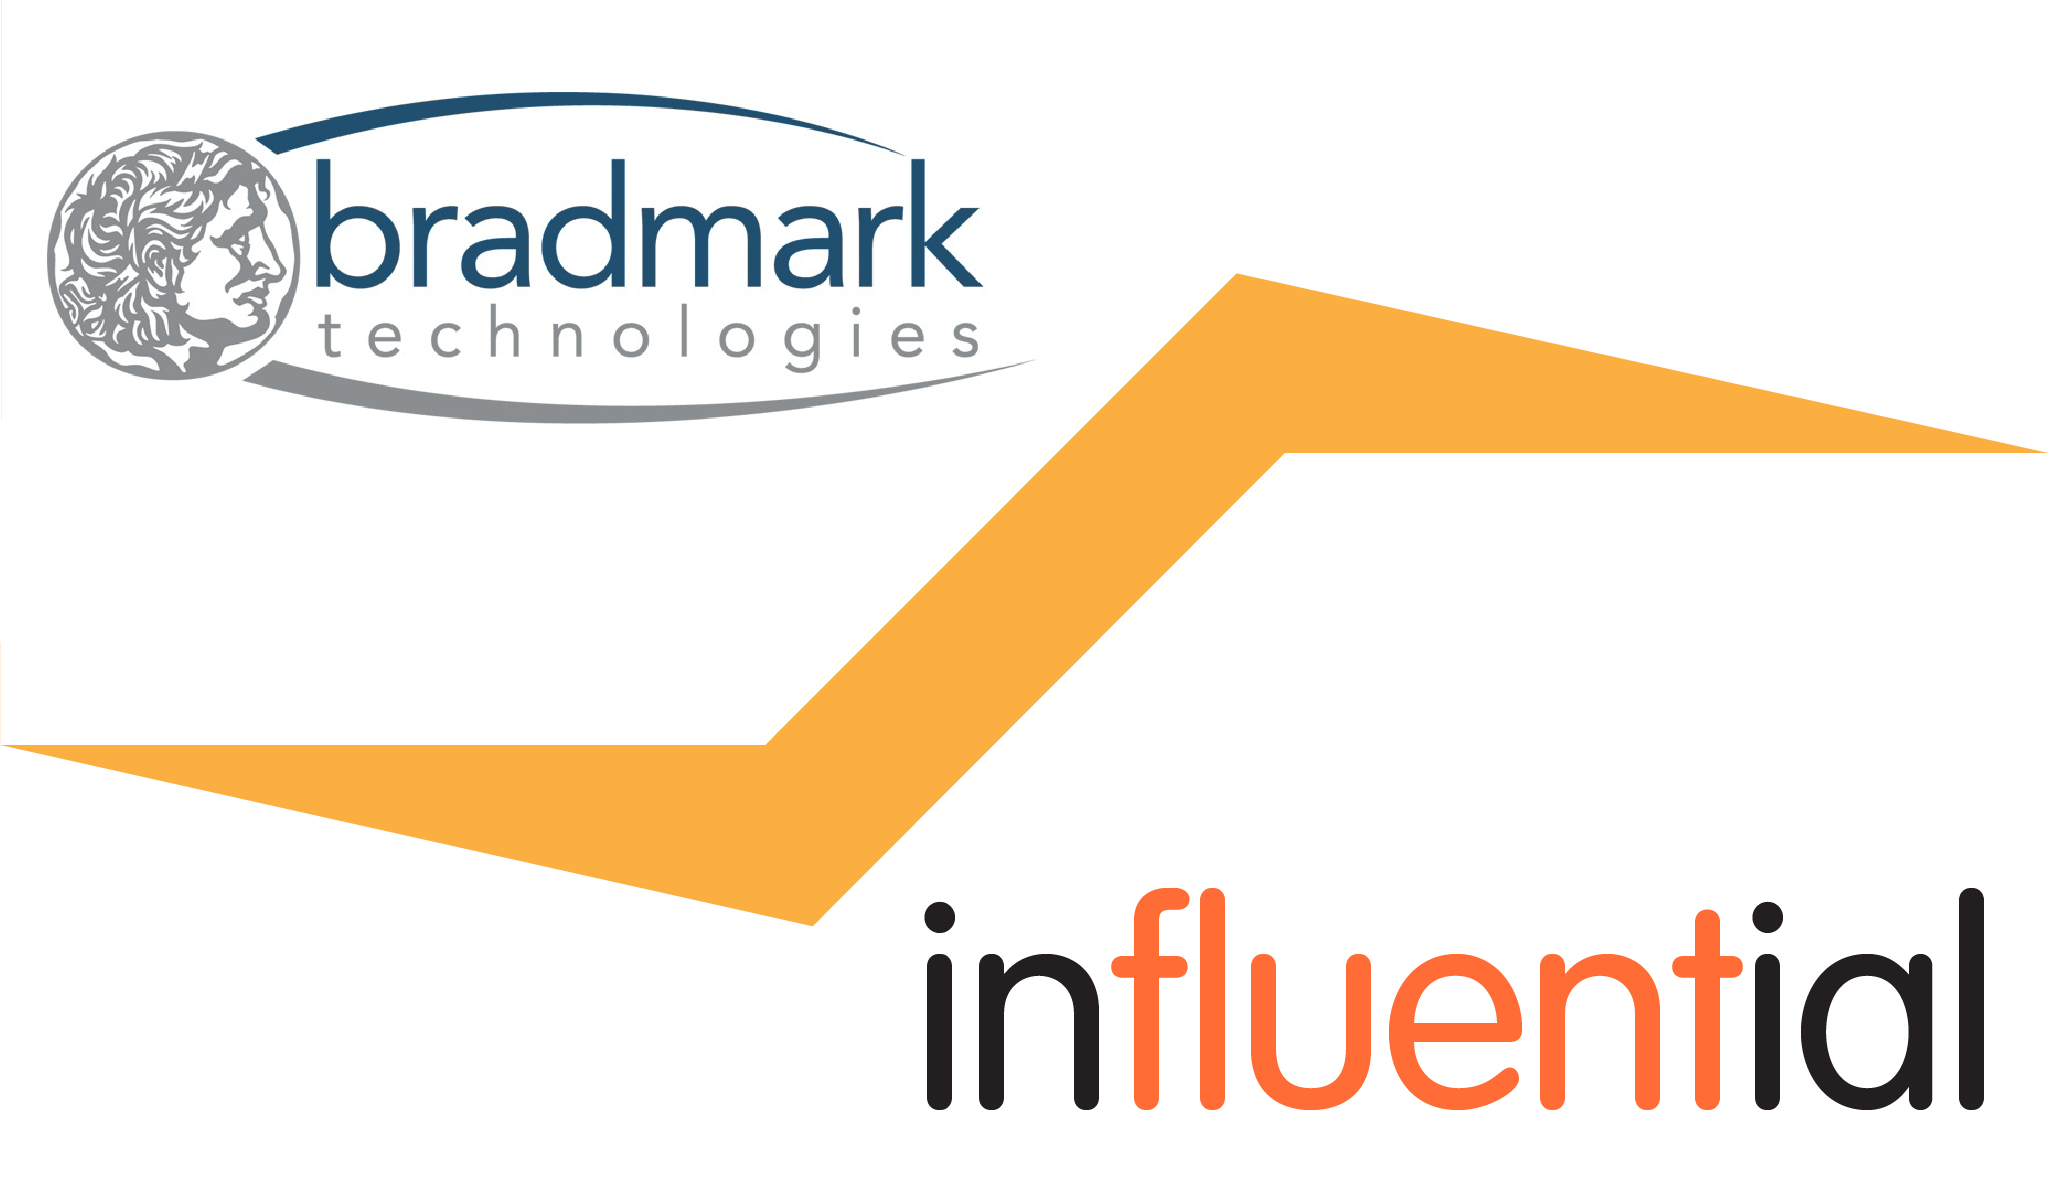 New Partnership - Bradmark Technologies and Influential Software